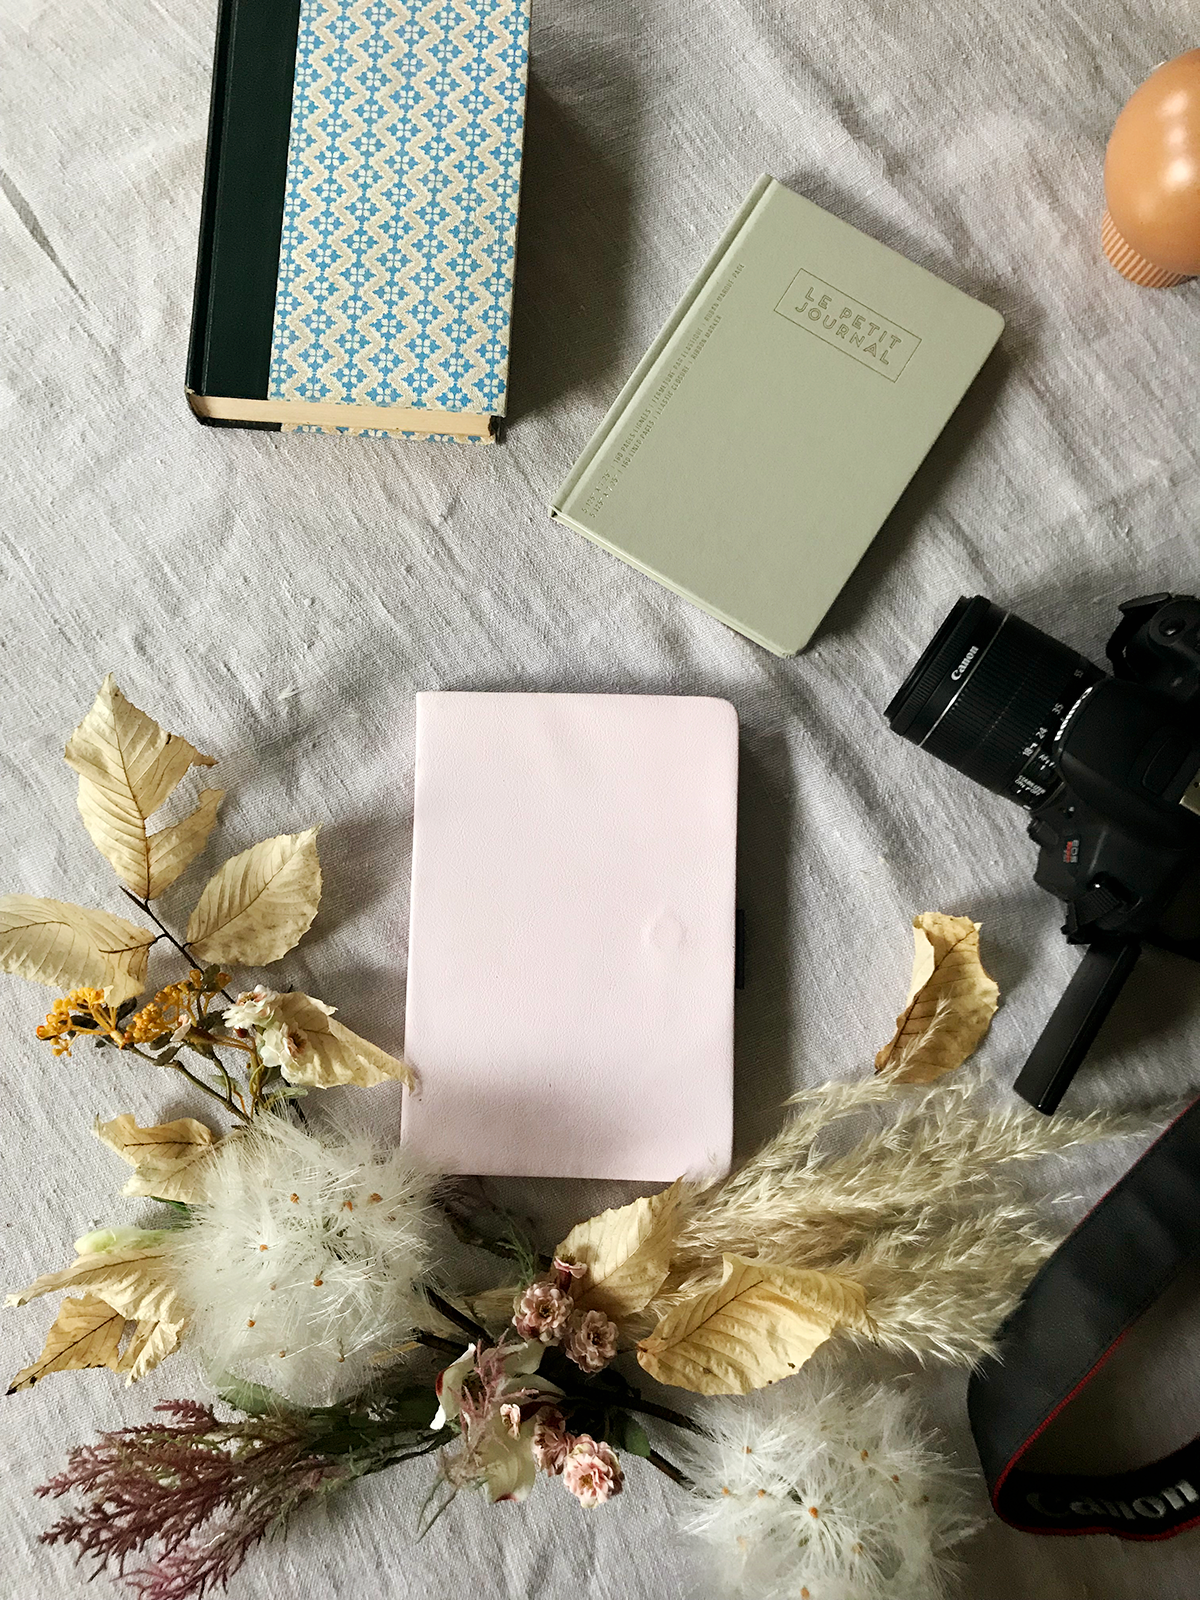 Behind The Scenes: The Making of The Spring Flora Collection